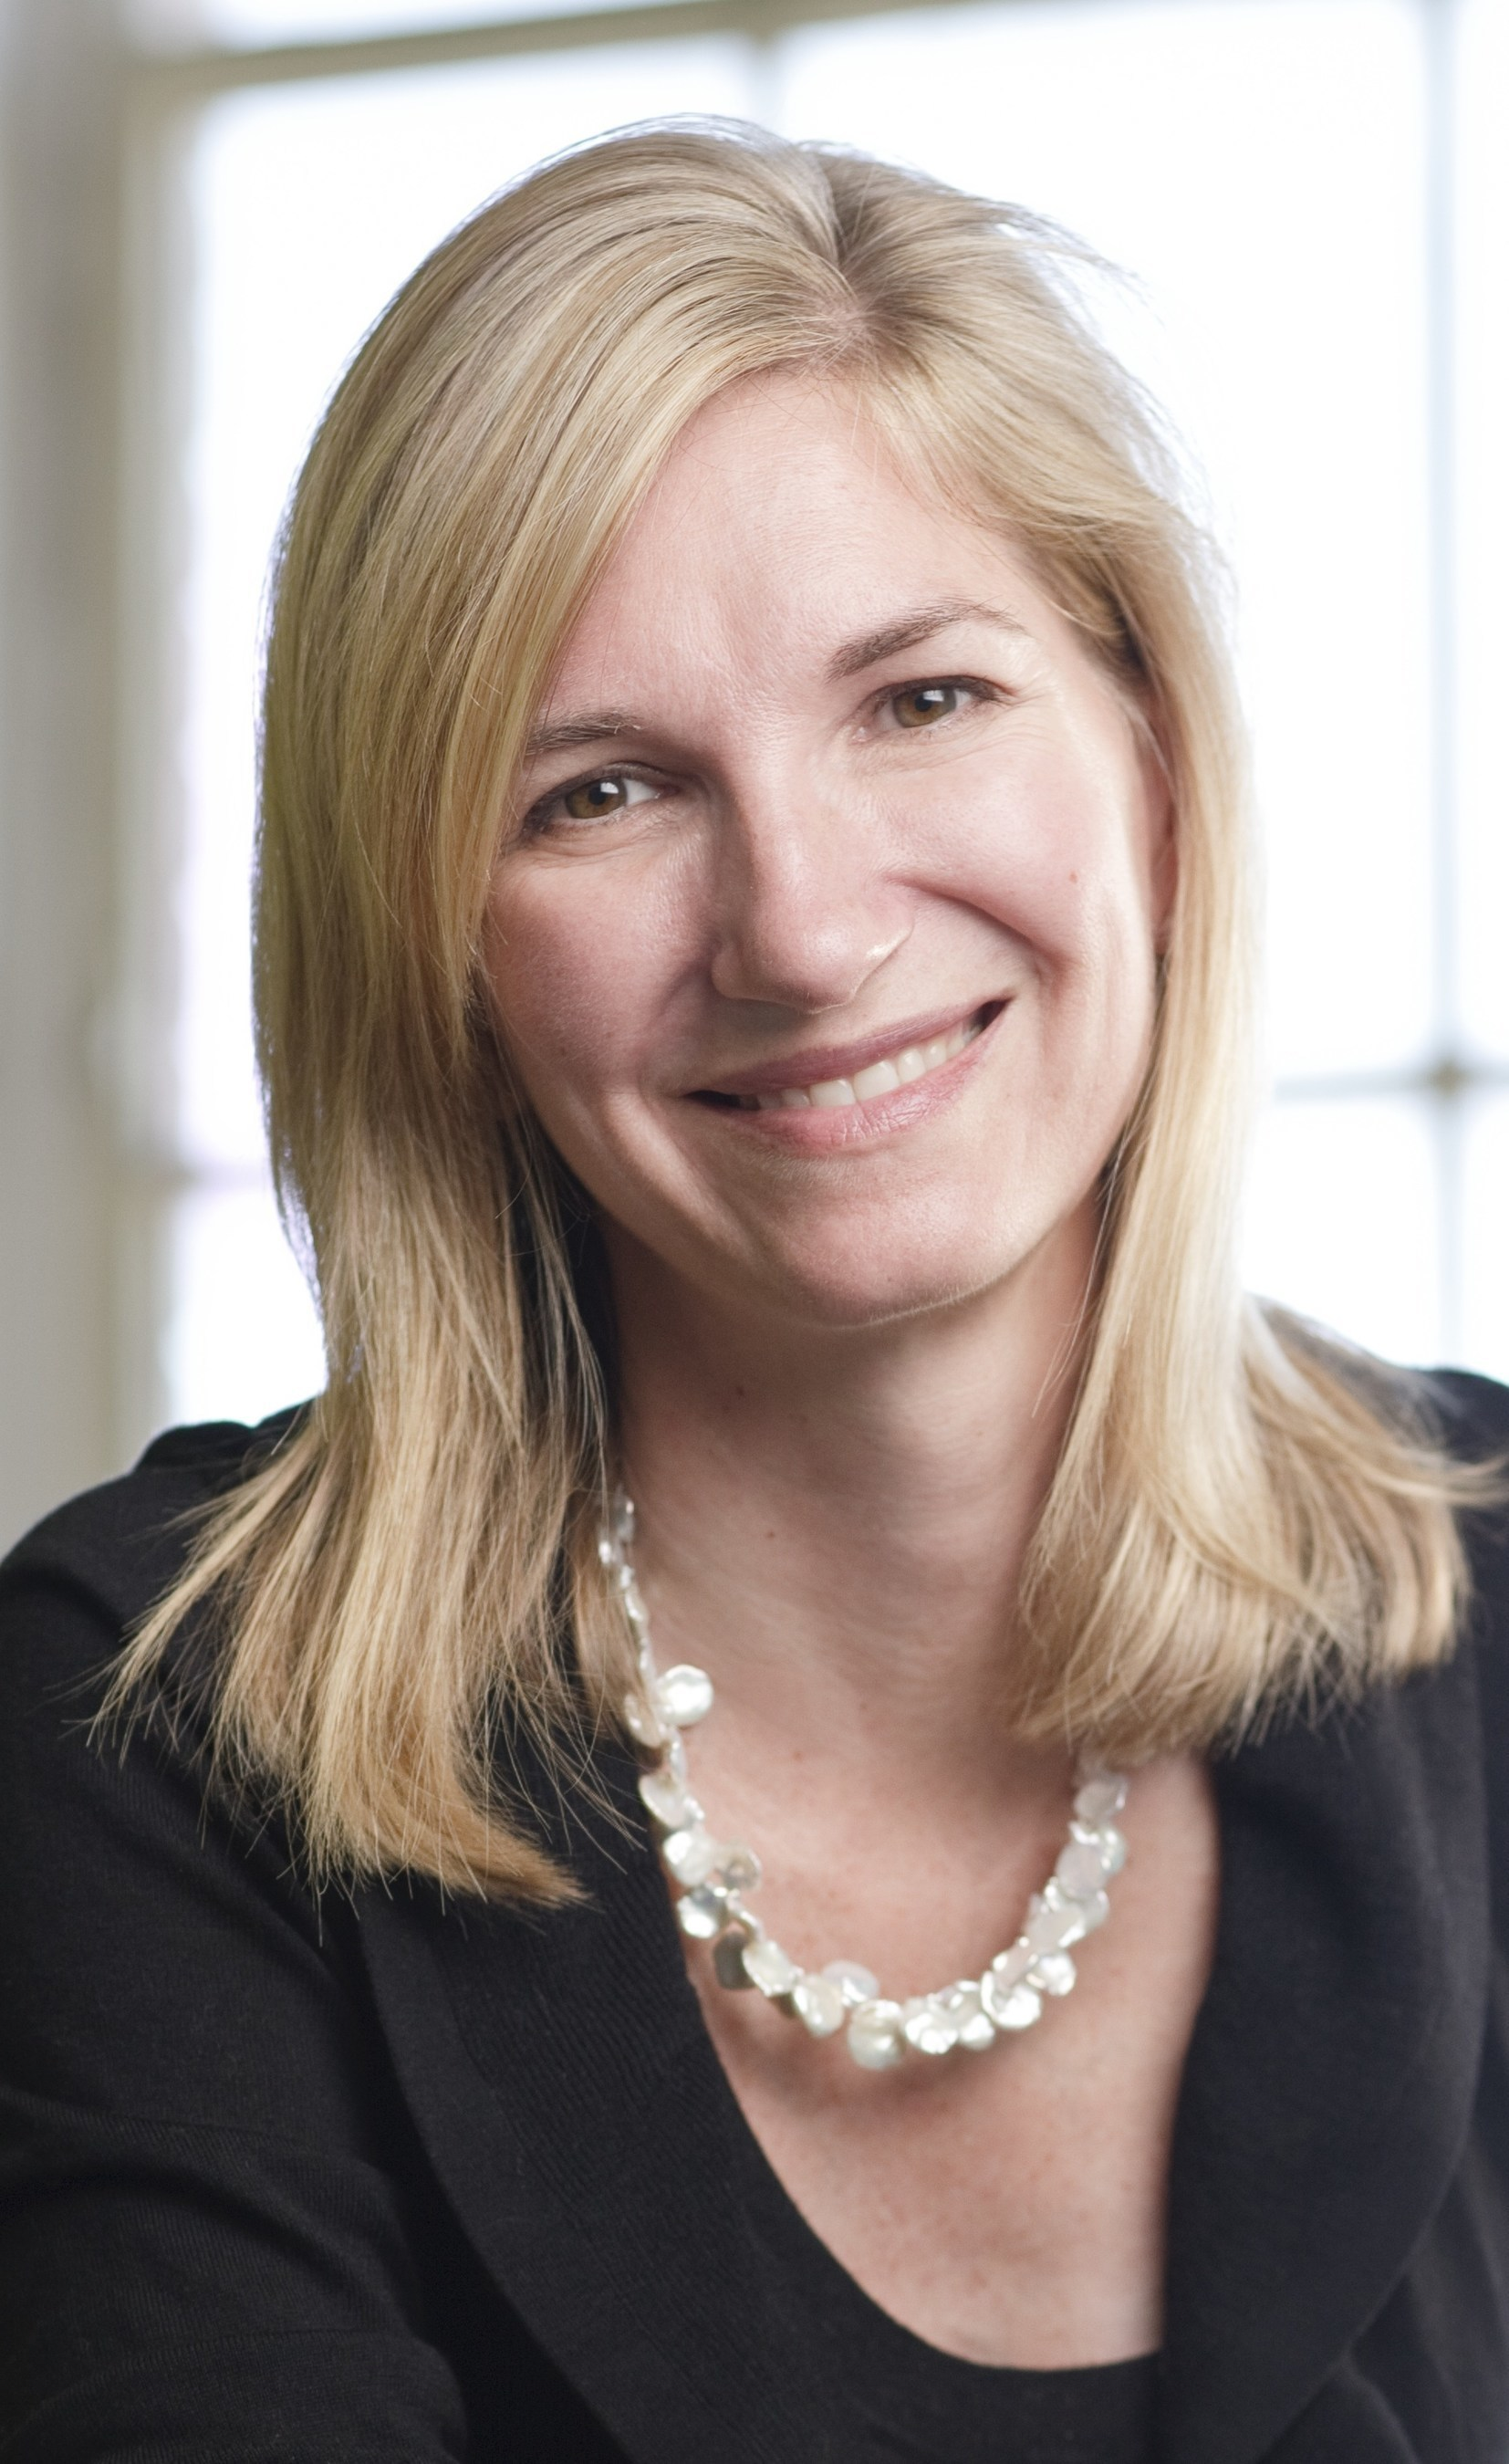 Julie Herendeen - Joins HubSpot Board of Directors